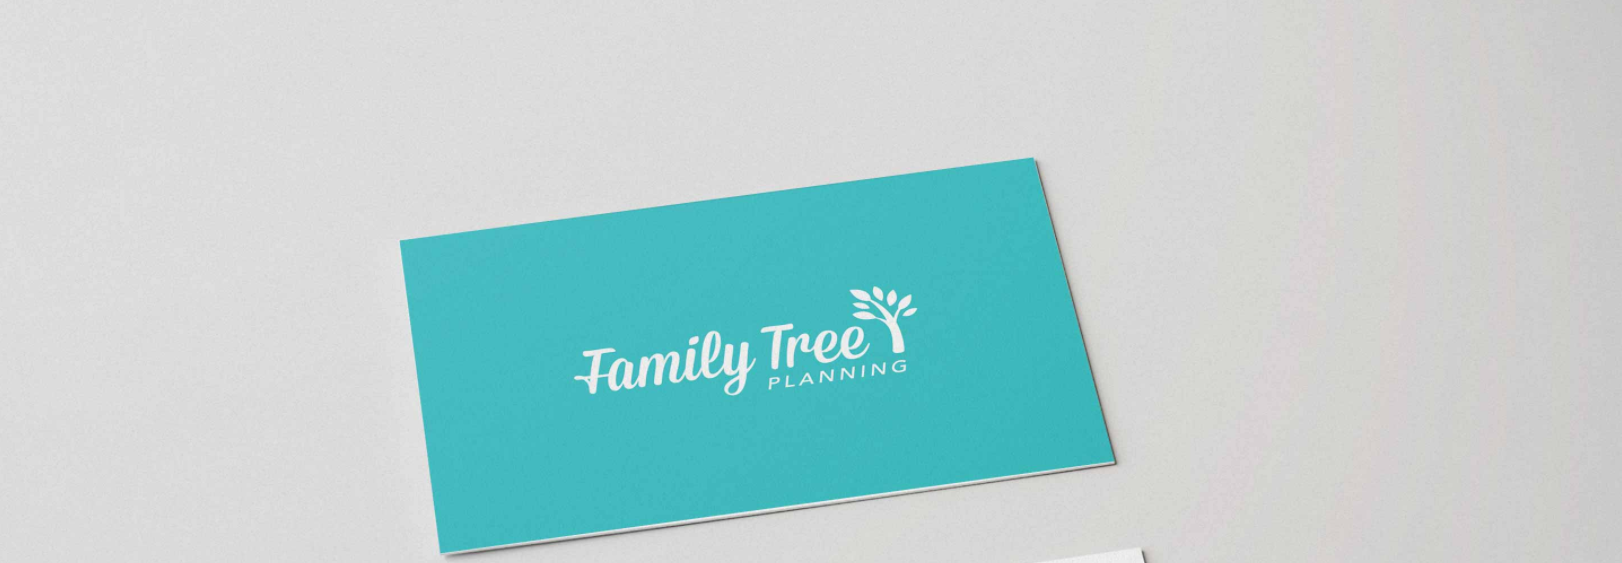 Business cards scottsdale arizona best business cards business cards scottsdale arizona best magicingreecefo Gallery